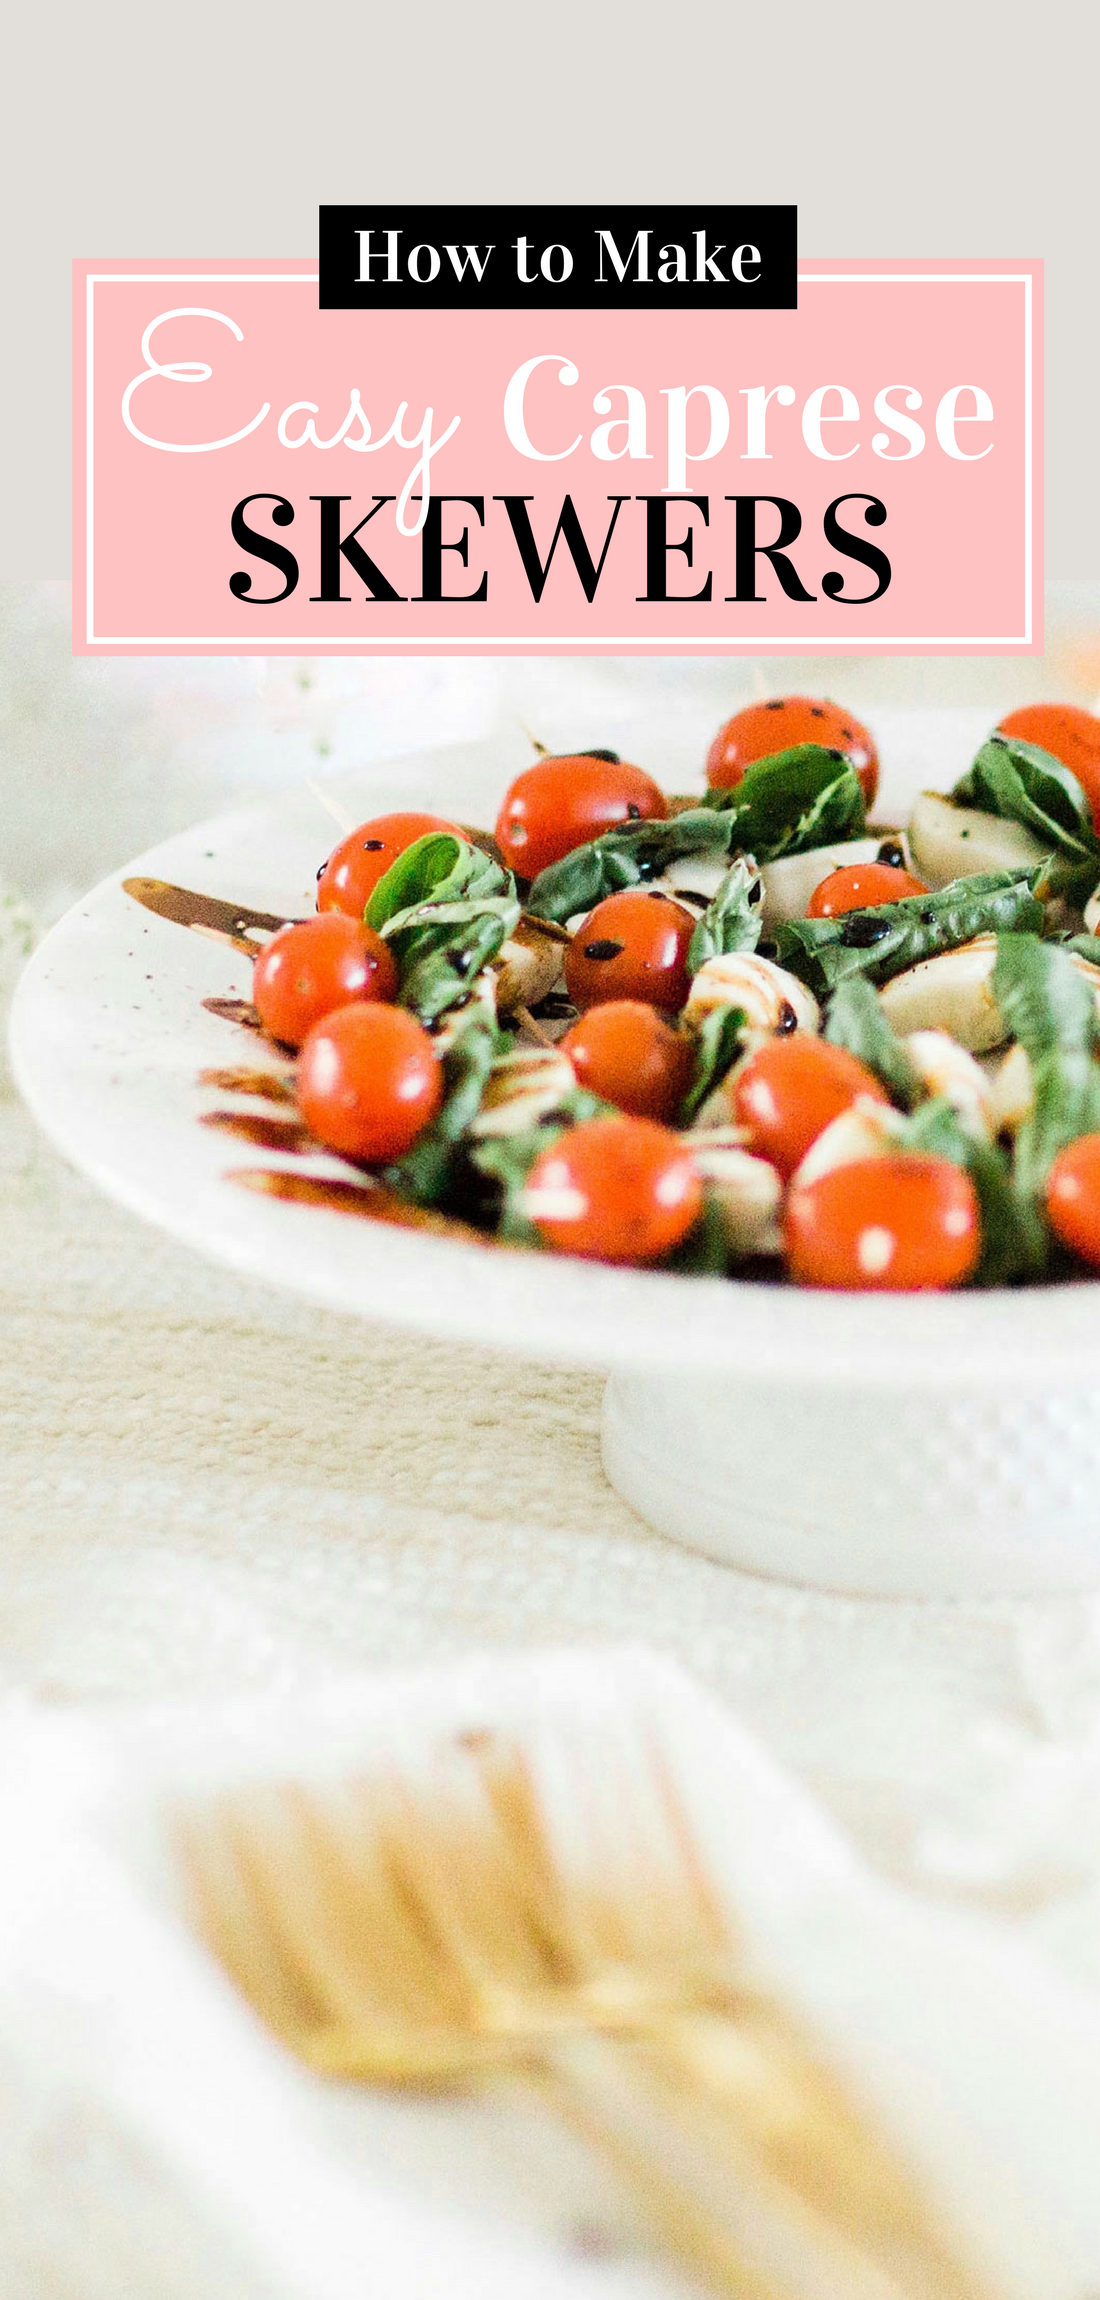 Need a super simple appetizer for your next party? These caprese skewers with balsamic drizzle couldn't be easier to put together, taste absolutely delicious, and are always a perfect crowd-pleaser! Click through for the recipe. | glitterinc.com | @glitterinc - Caprese Skewers With Balsamic Glaze featured by popular North Carolina food blogger, Glitter, Inc.